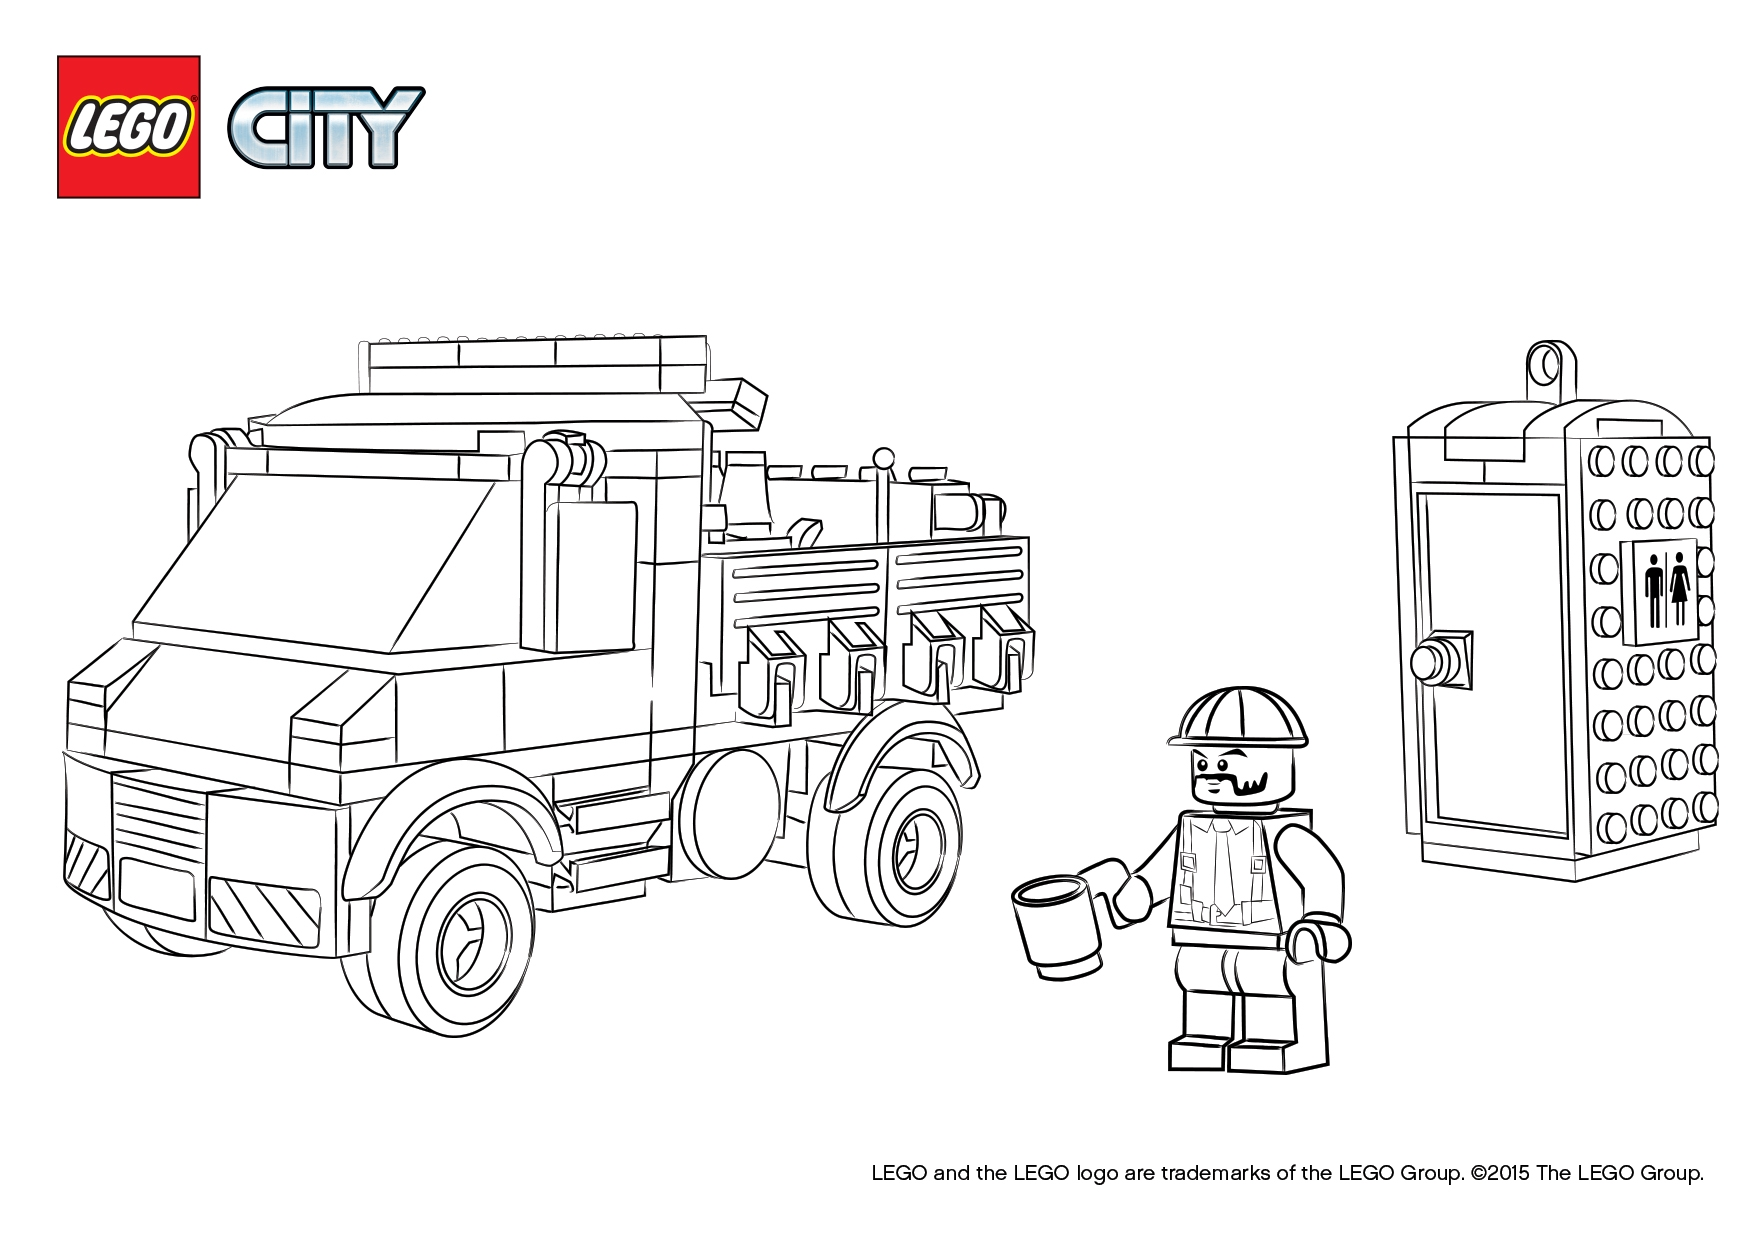 lego city coloring pages - q=lego police truck